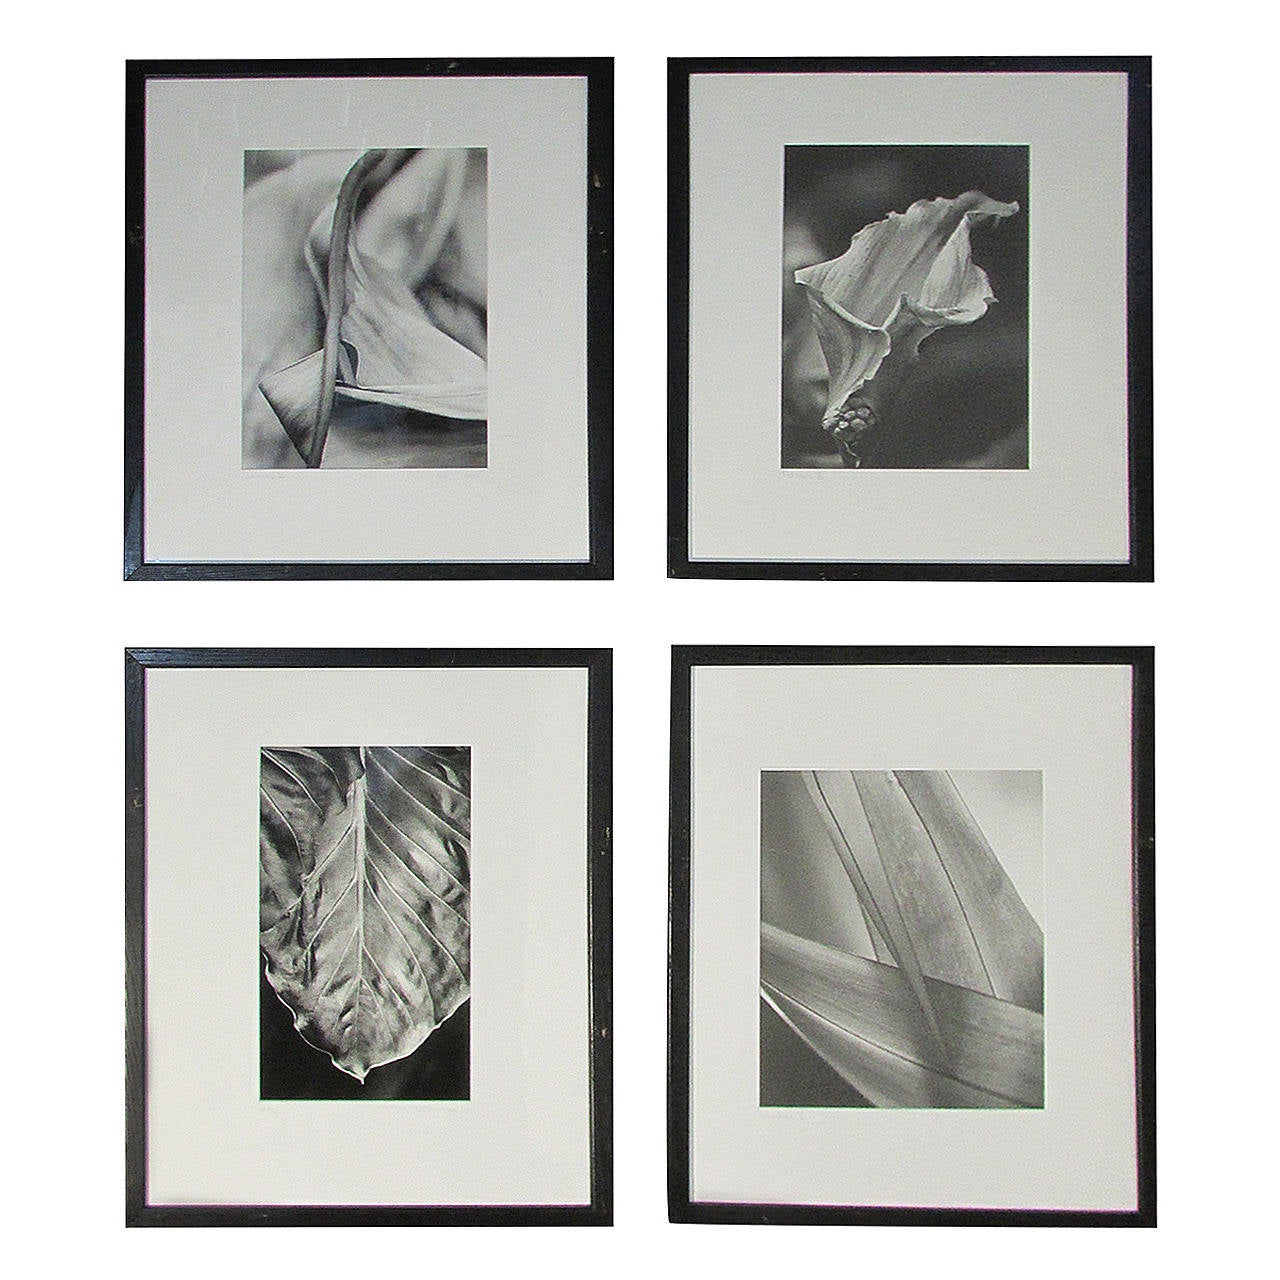 Erotic Flora & Fauna Photographs in the Style of Robert Mapplethorpe